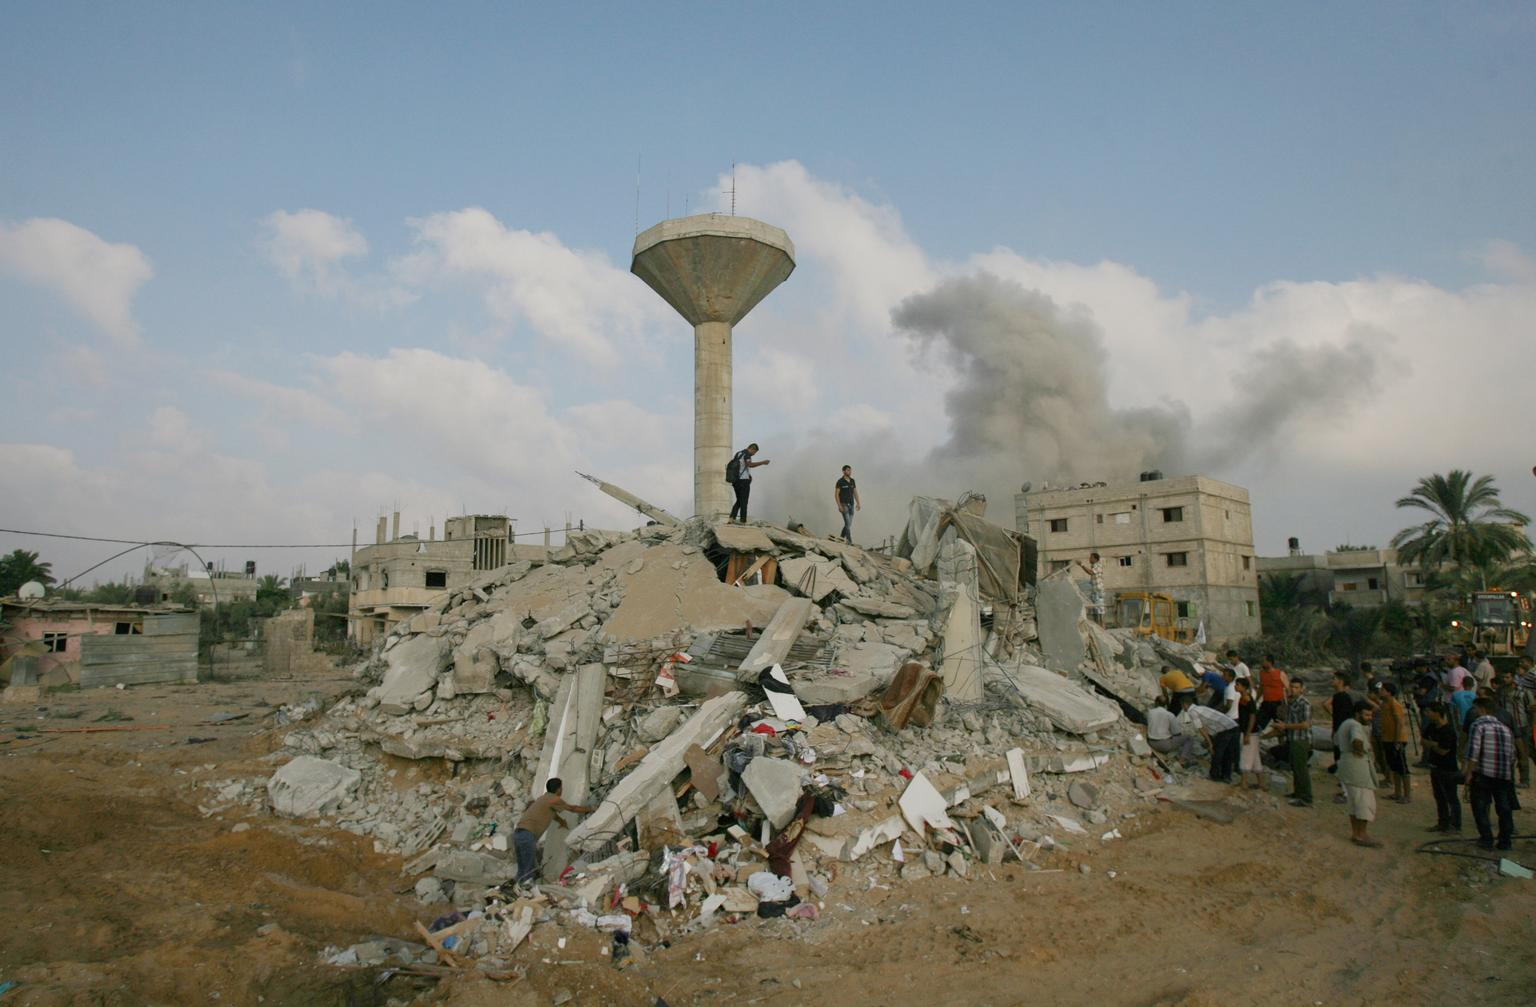 People search for victims amid the rubble of a destroyed home in the town of Rafah, southern Gaza. A cloud of smoke is visible in the distance. © UNICEF/NYHQ2014-1045/El Baba